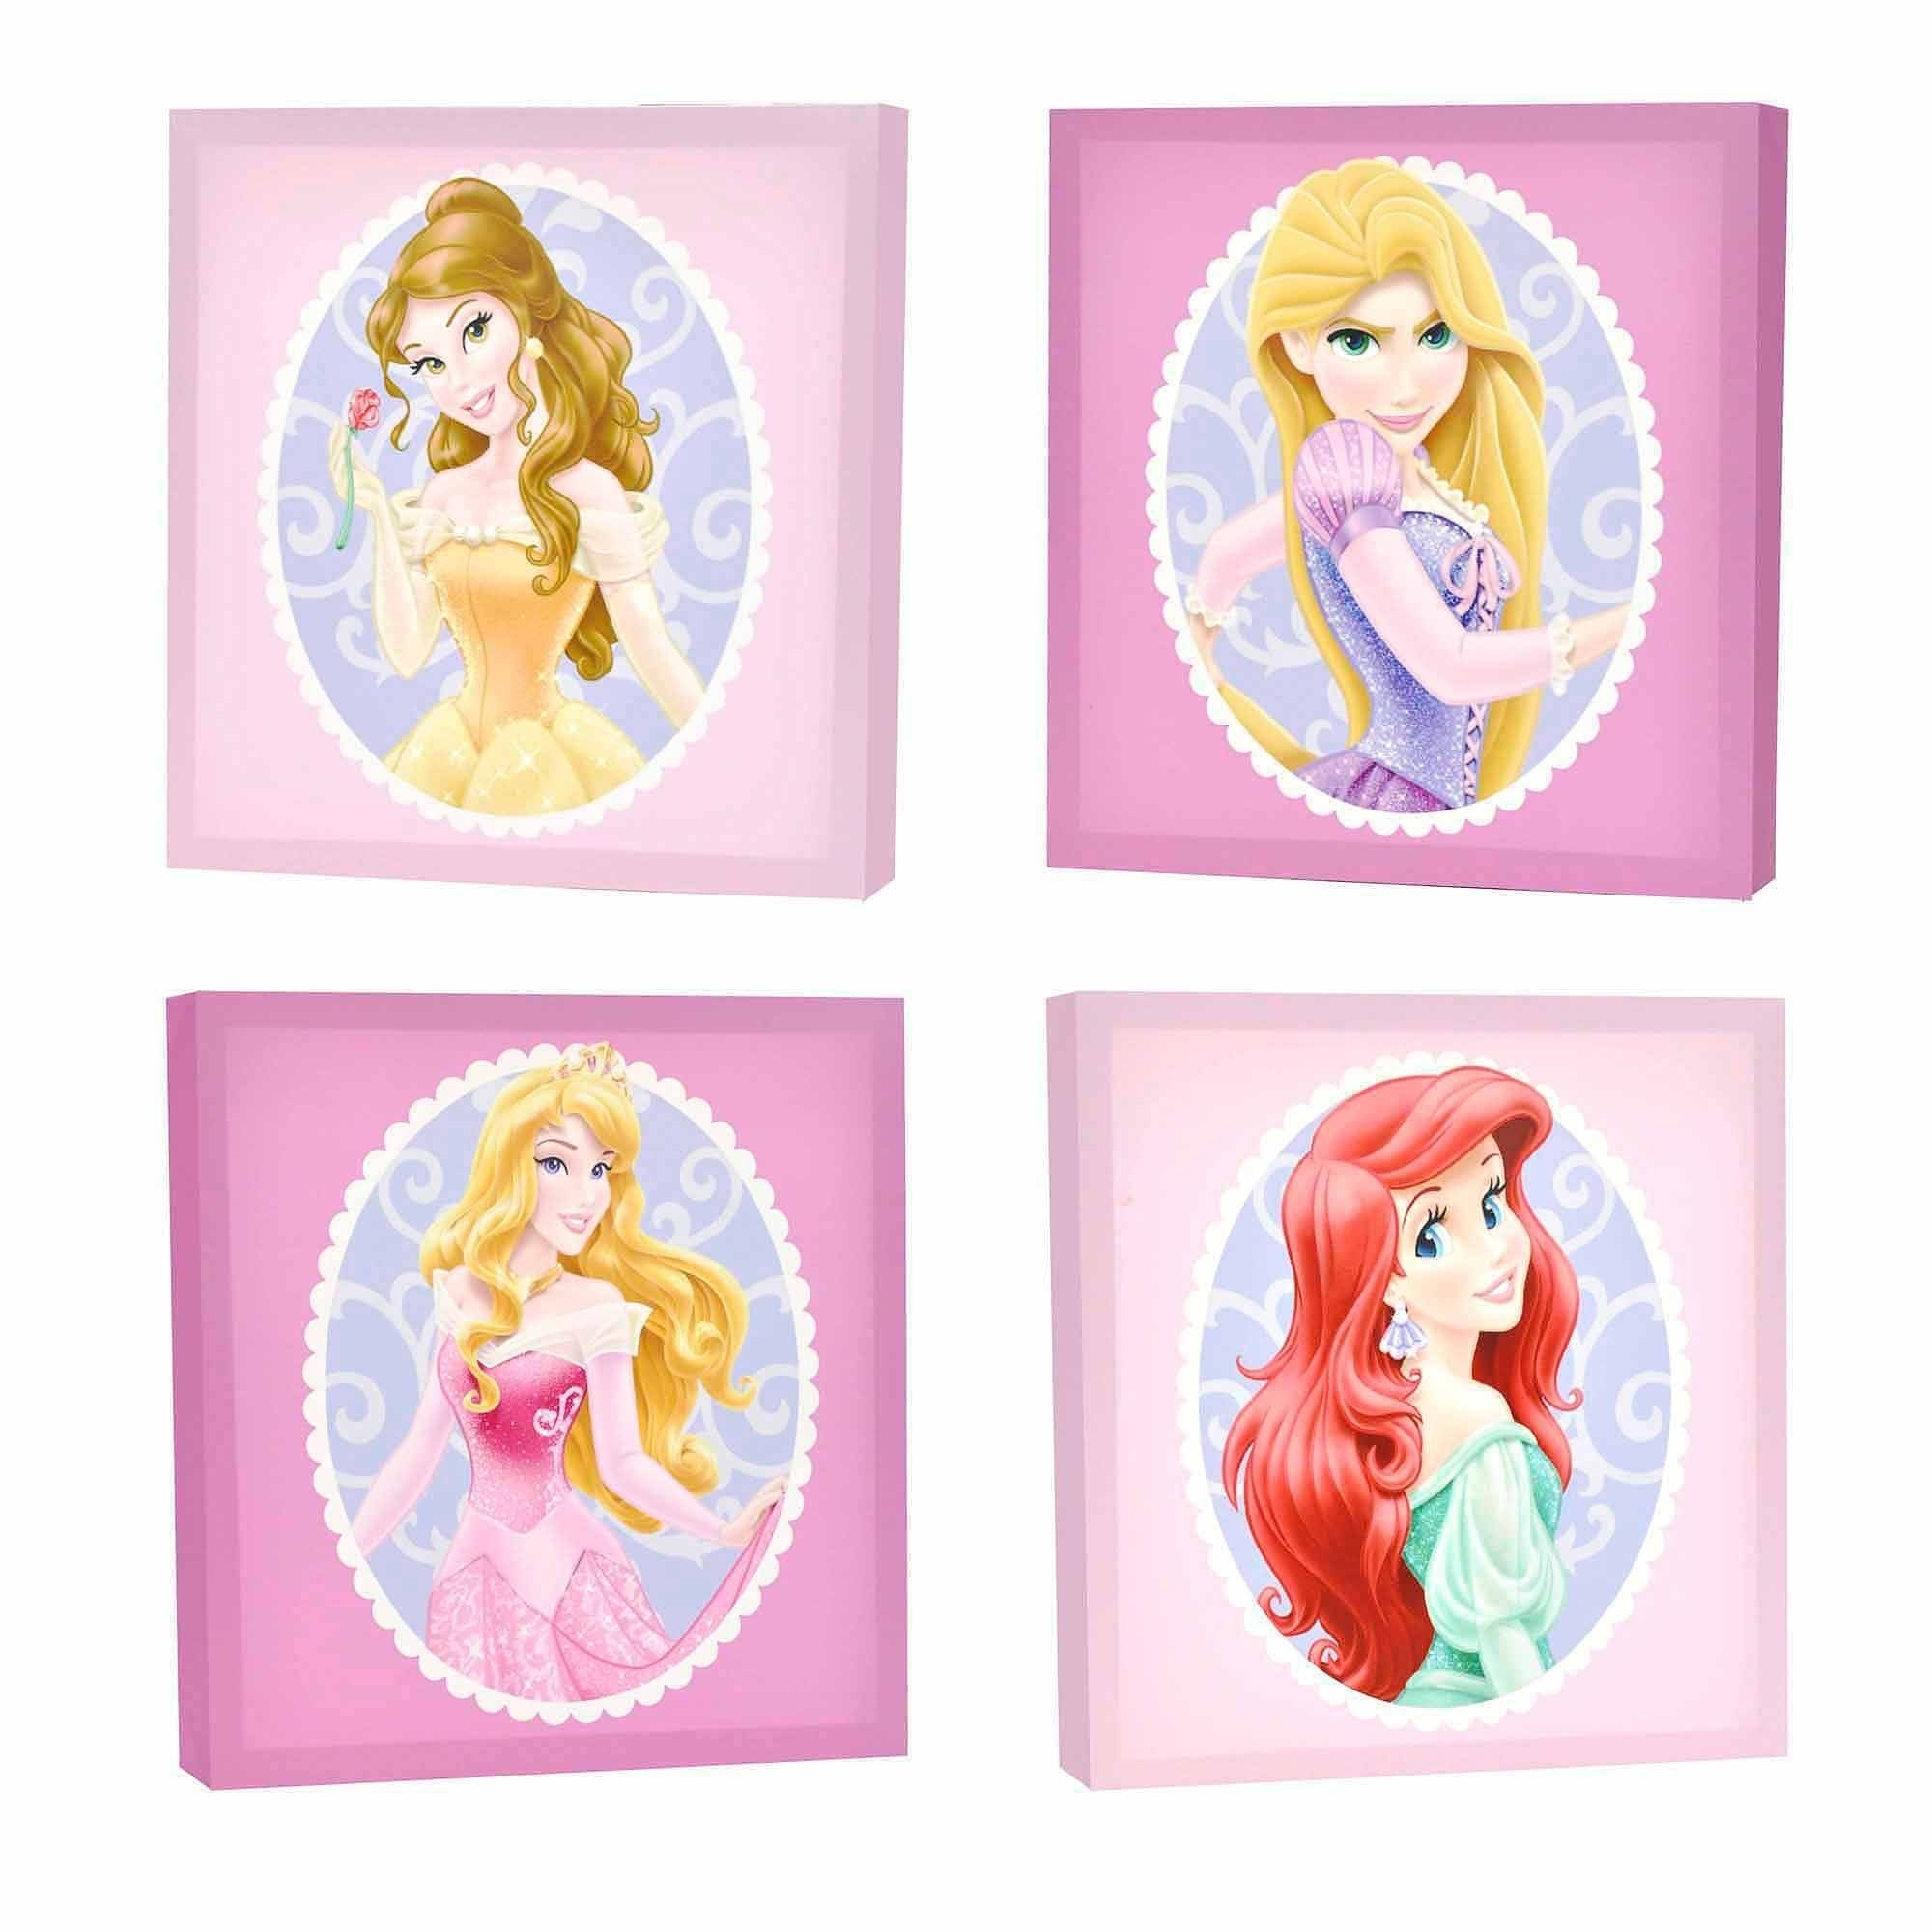 The Best Princess Canvas Wall Art Intended For 2018 Elsa Canvas Wall Art (View 15 of 15)